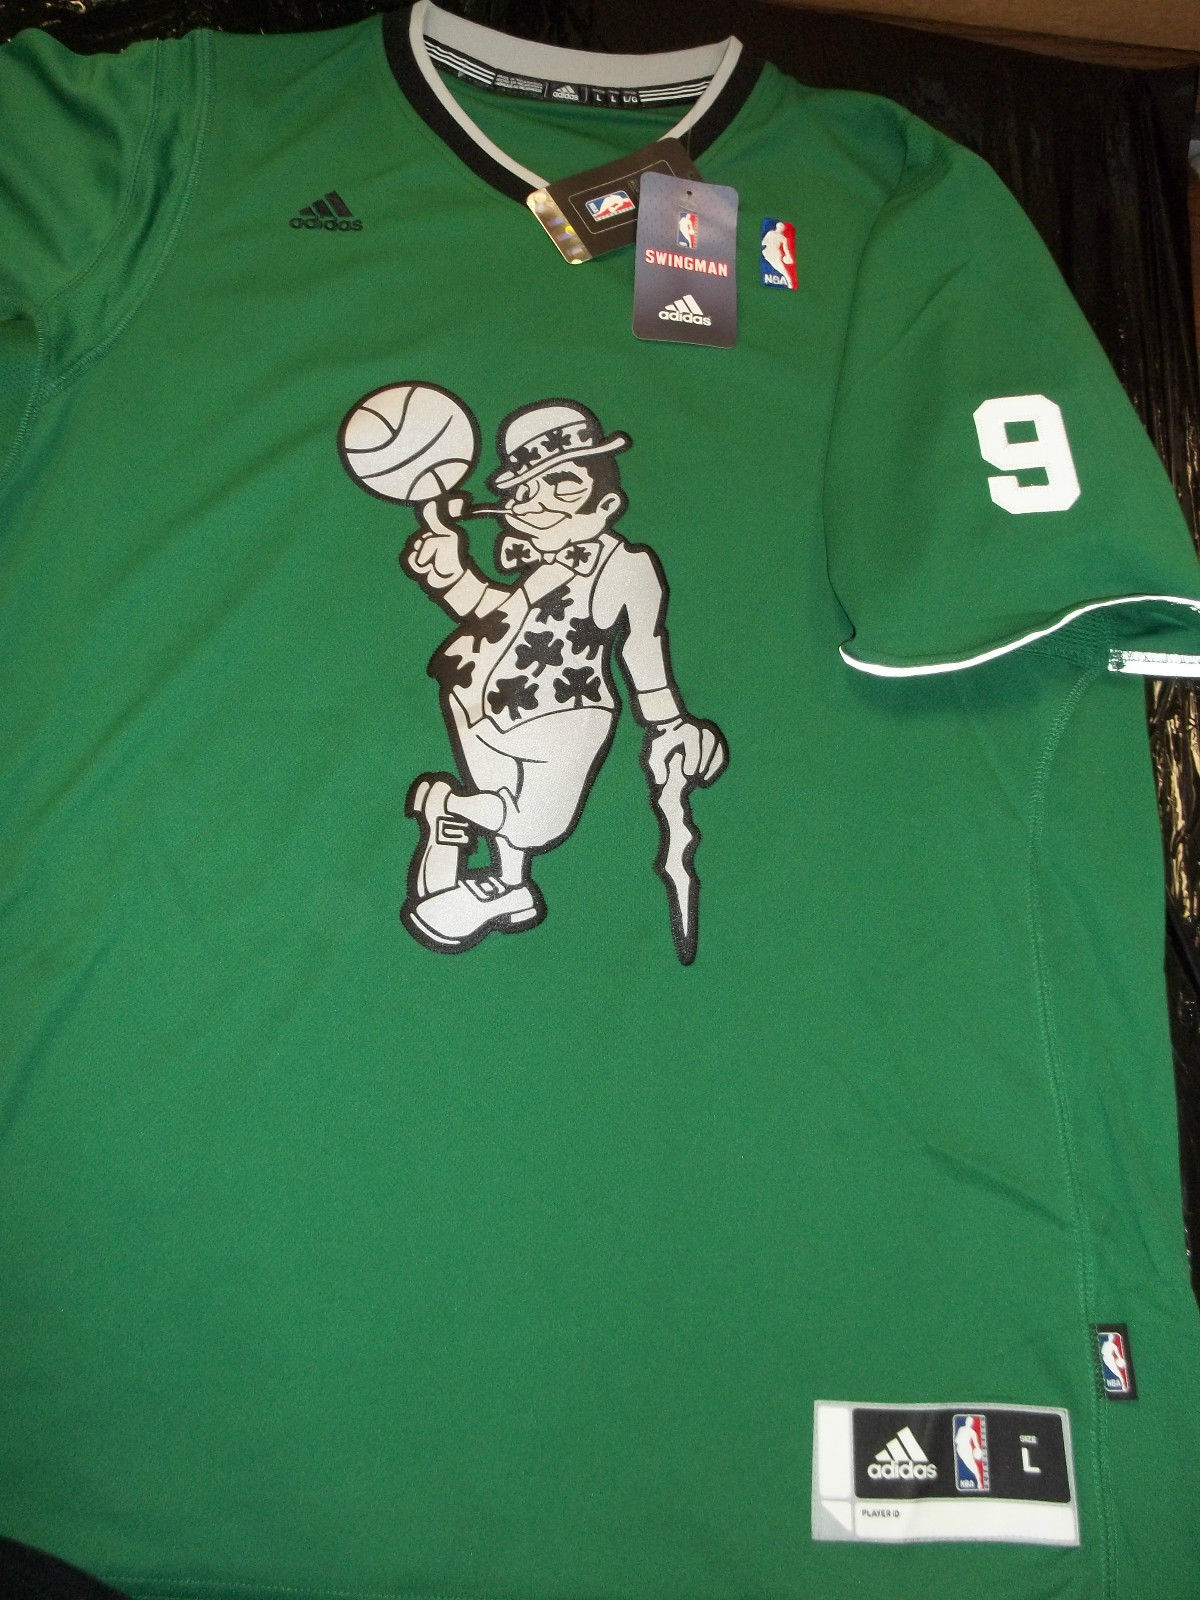 big sale d5c8a 379d3 Alternate jersey leak? : bostonceltics